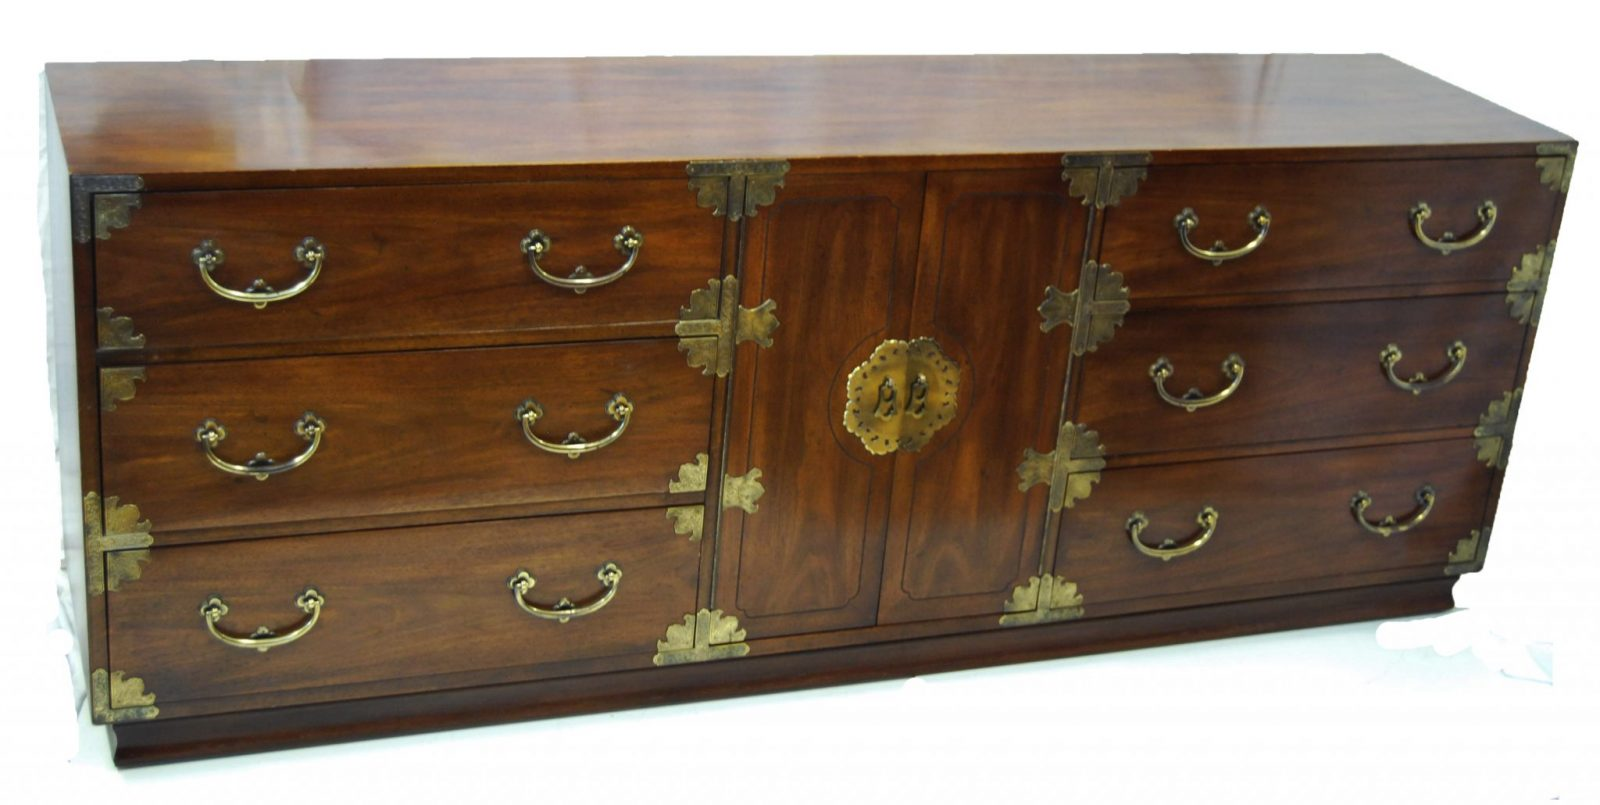 High Quality Dining Room Tables Asian Inspired Campaign Long Chest Of Drawers By Henredon